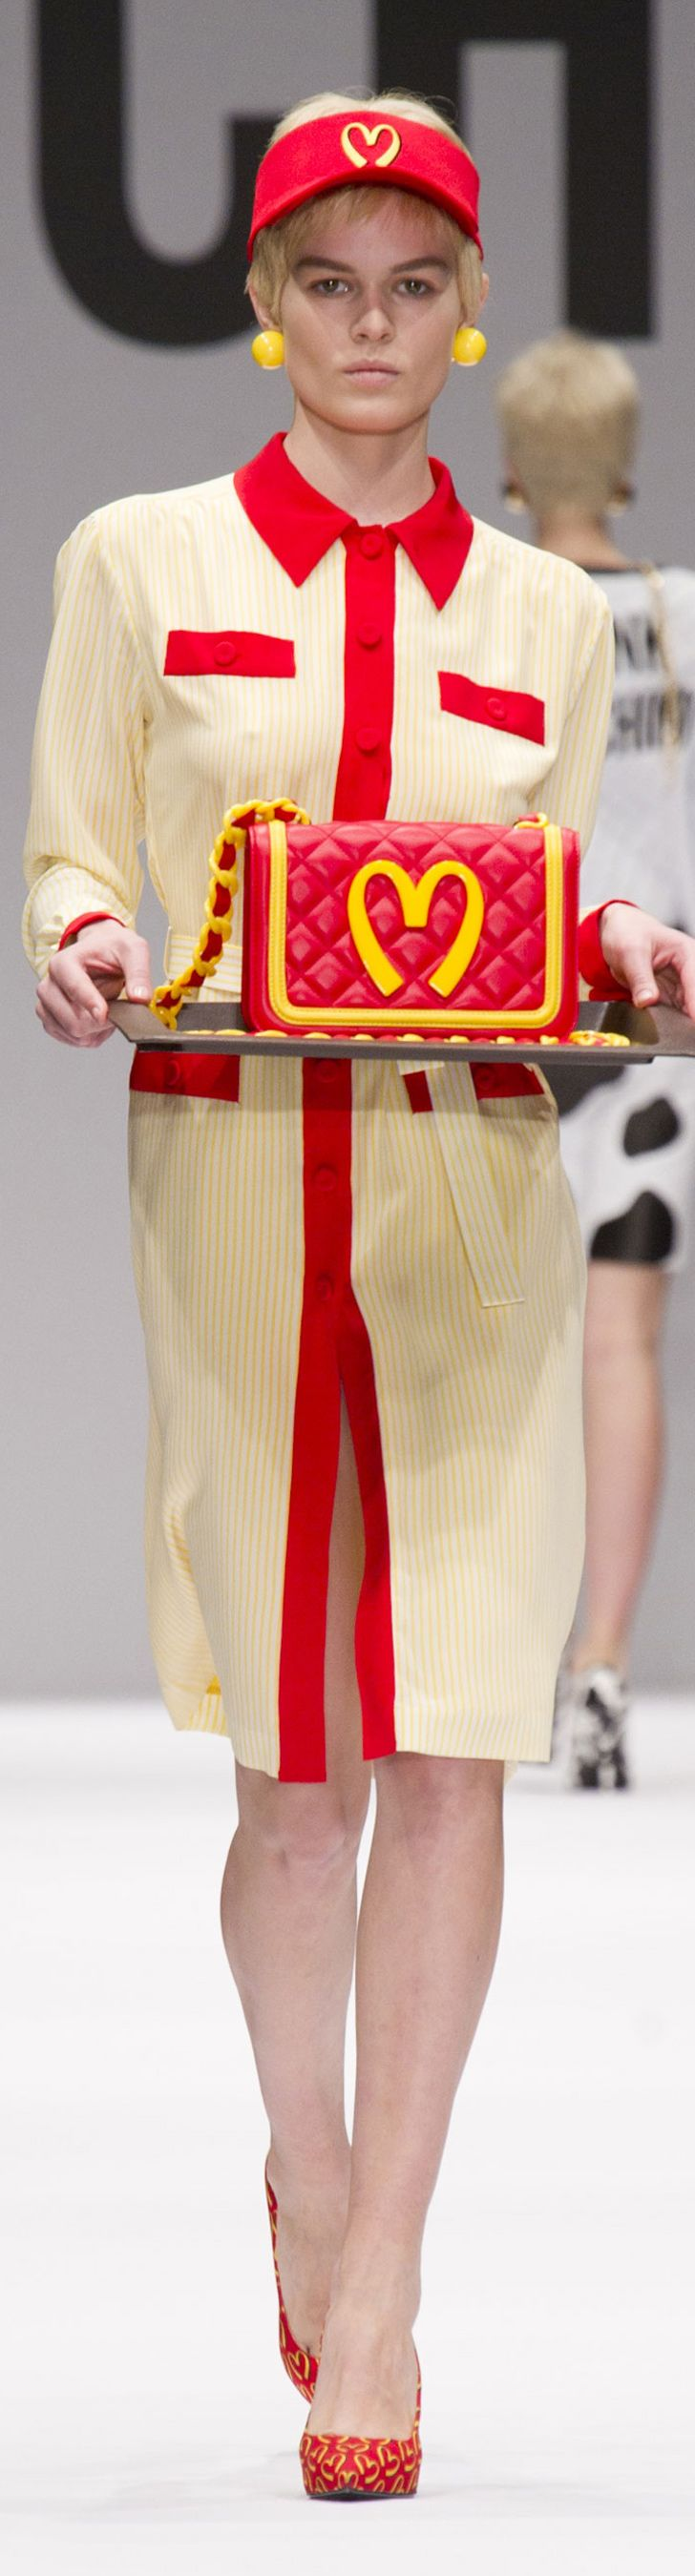 Jeremy Scott's McDonalds-inspired collection